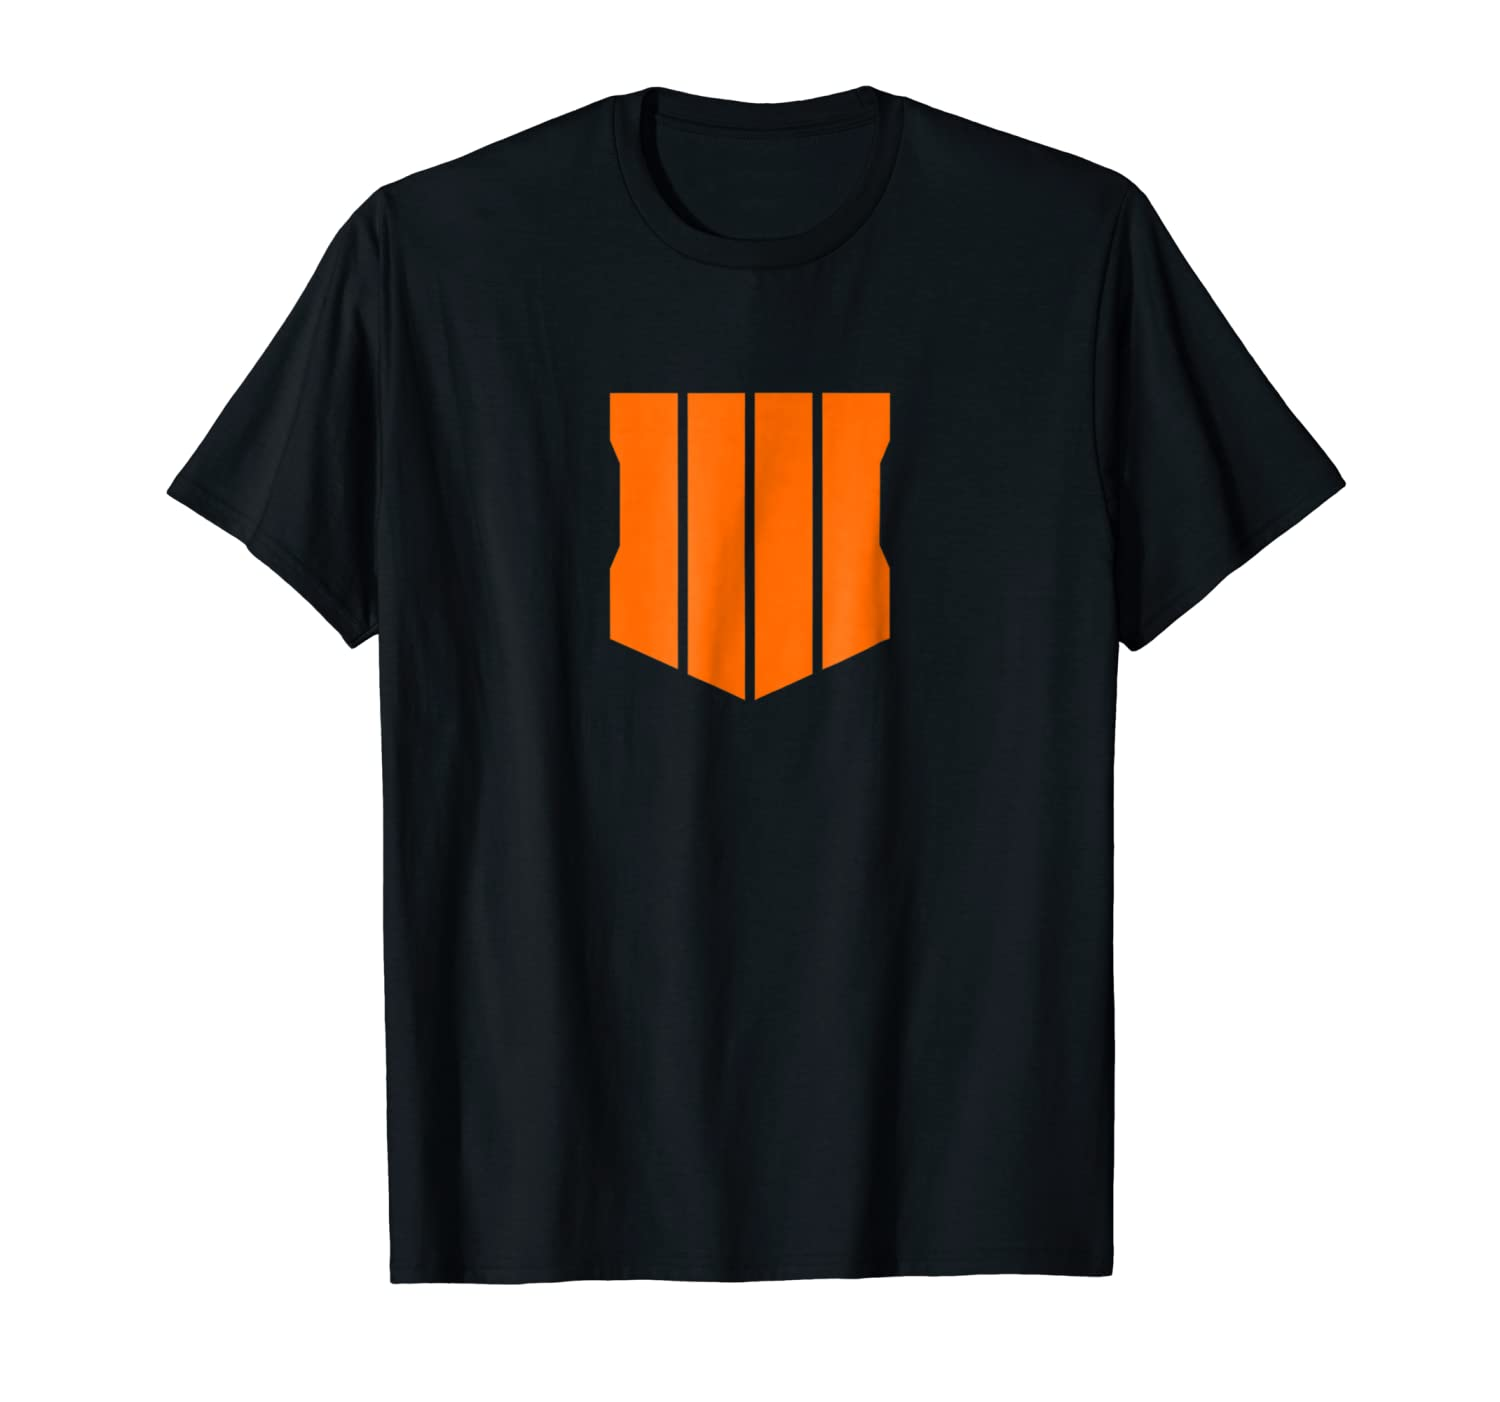 Call of Duty: Black Ops 4 Shield T-Shirt